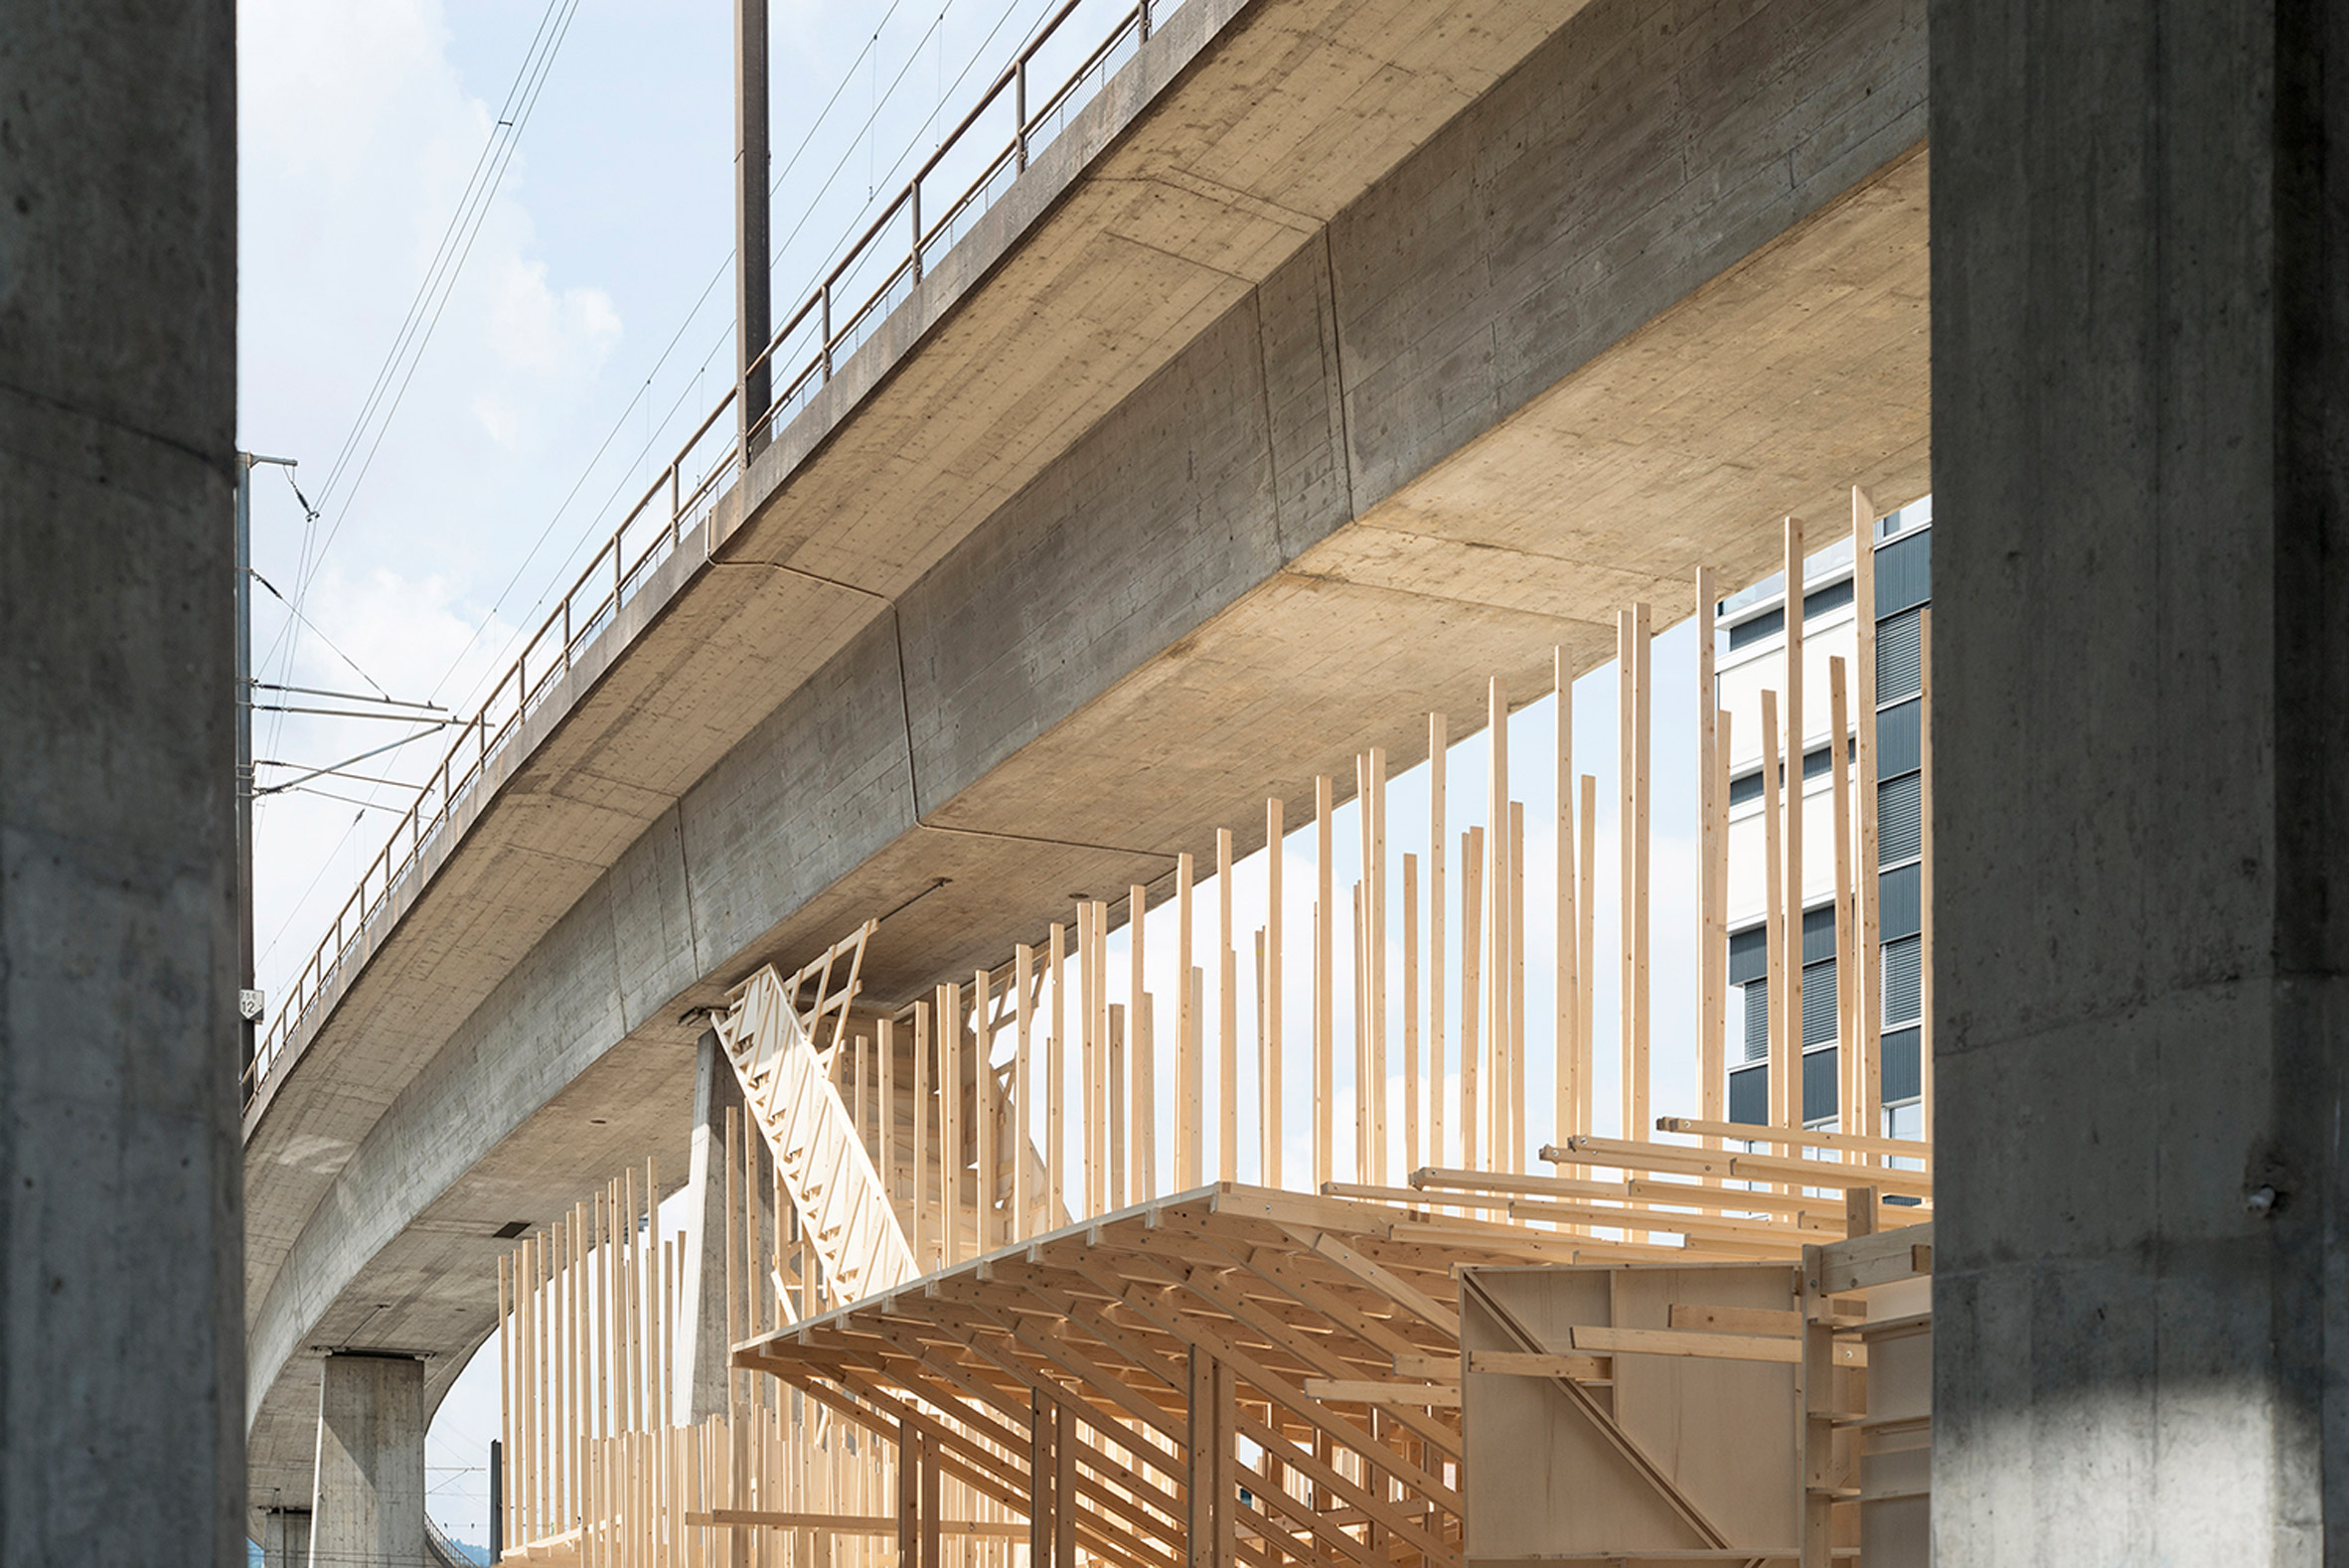 Swiss architecture students design and build wooden events pavilion beneath Zurich overpass